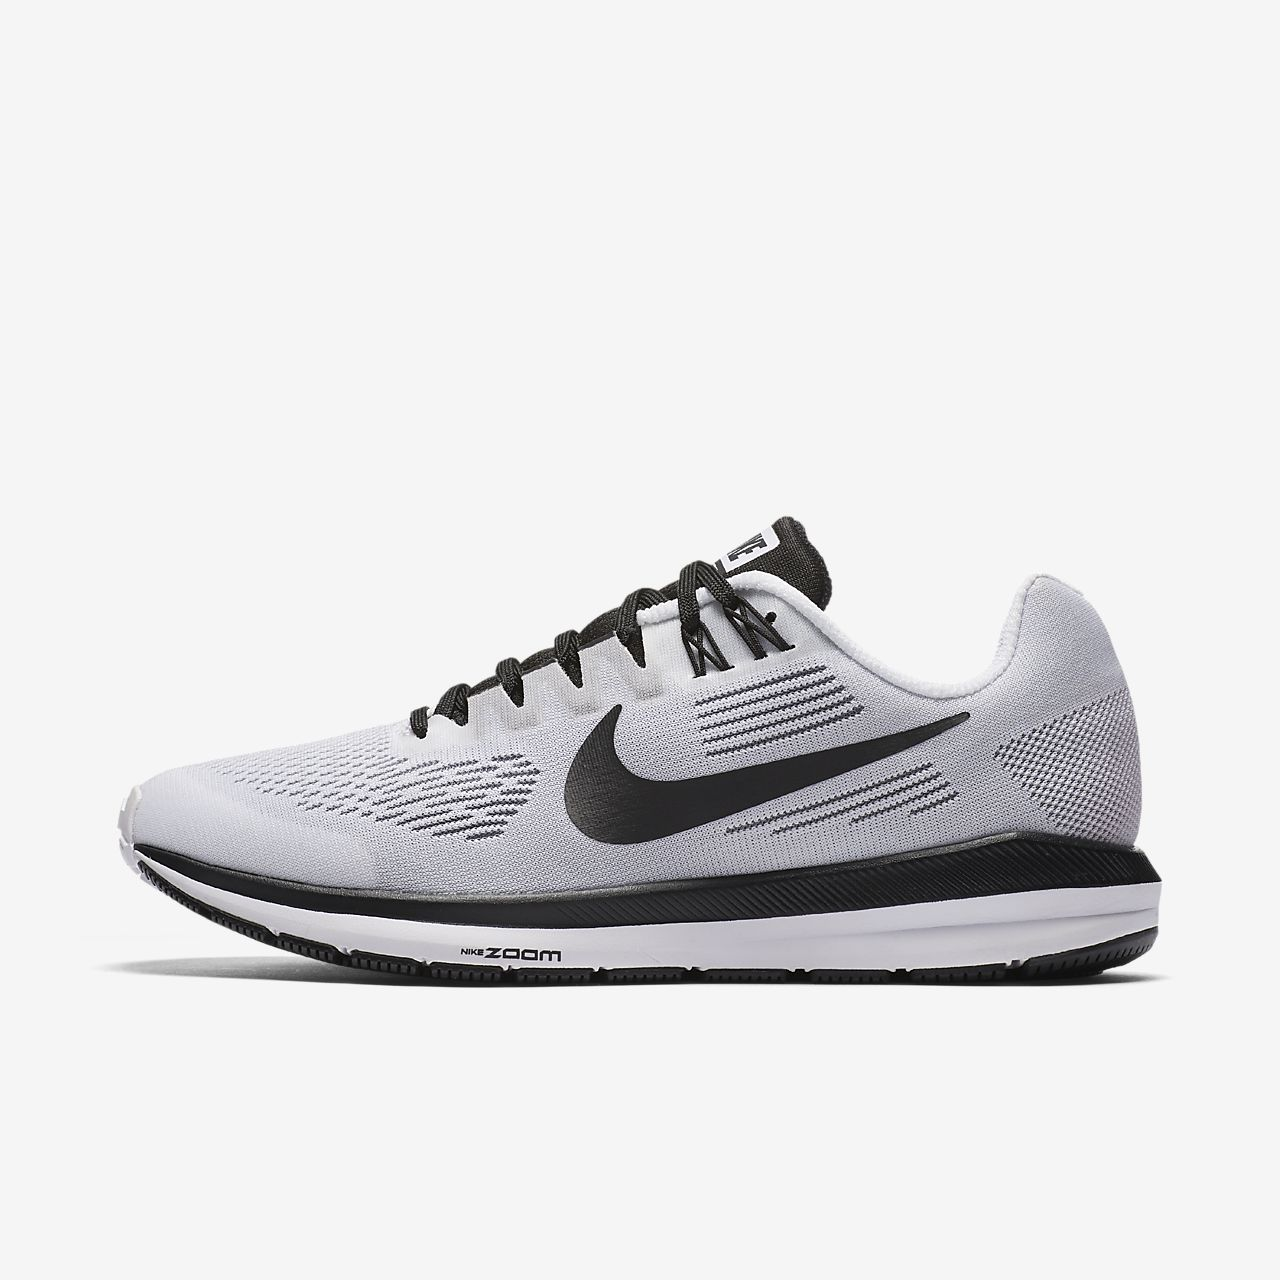 nike pro running shoes black and white women's heels